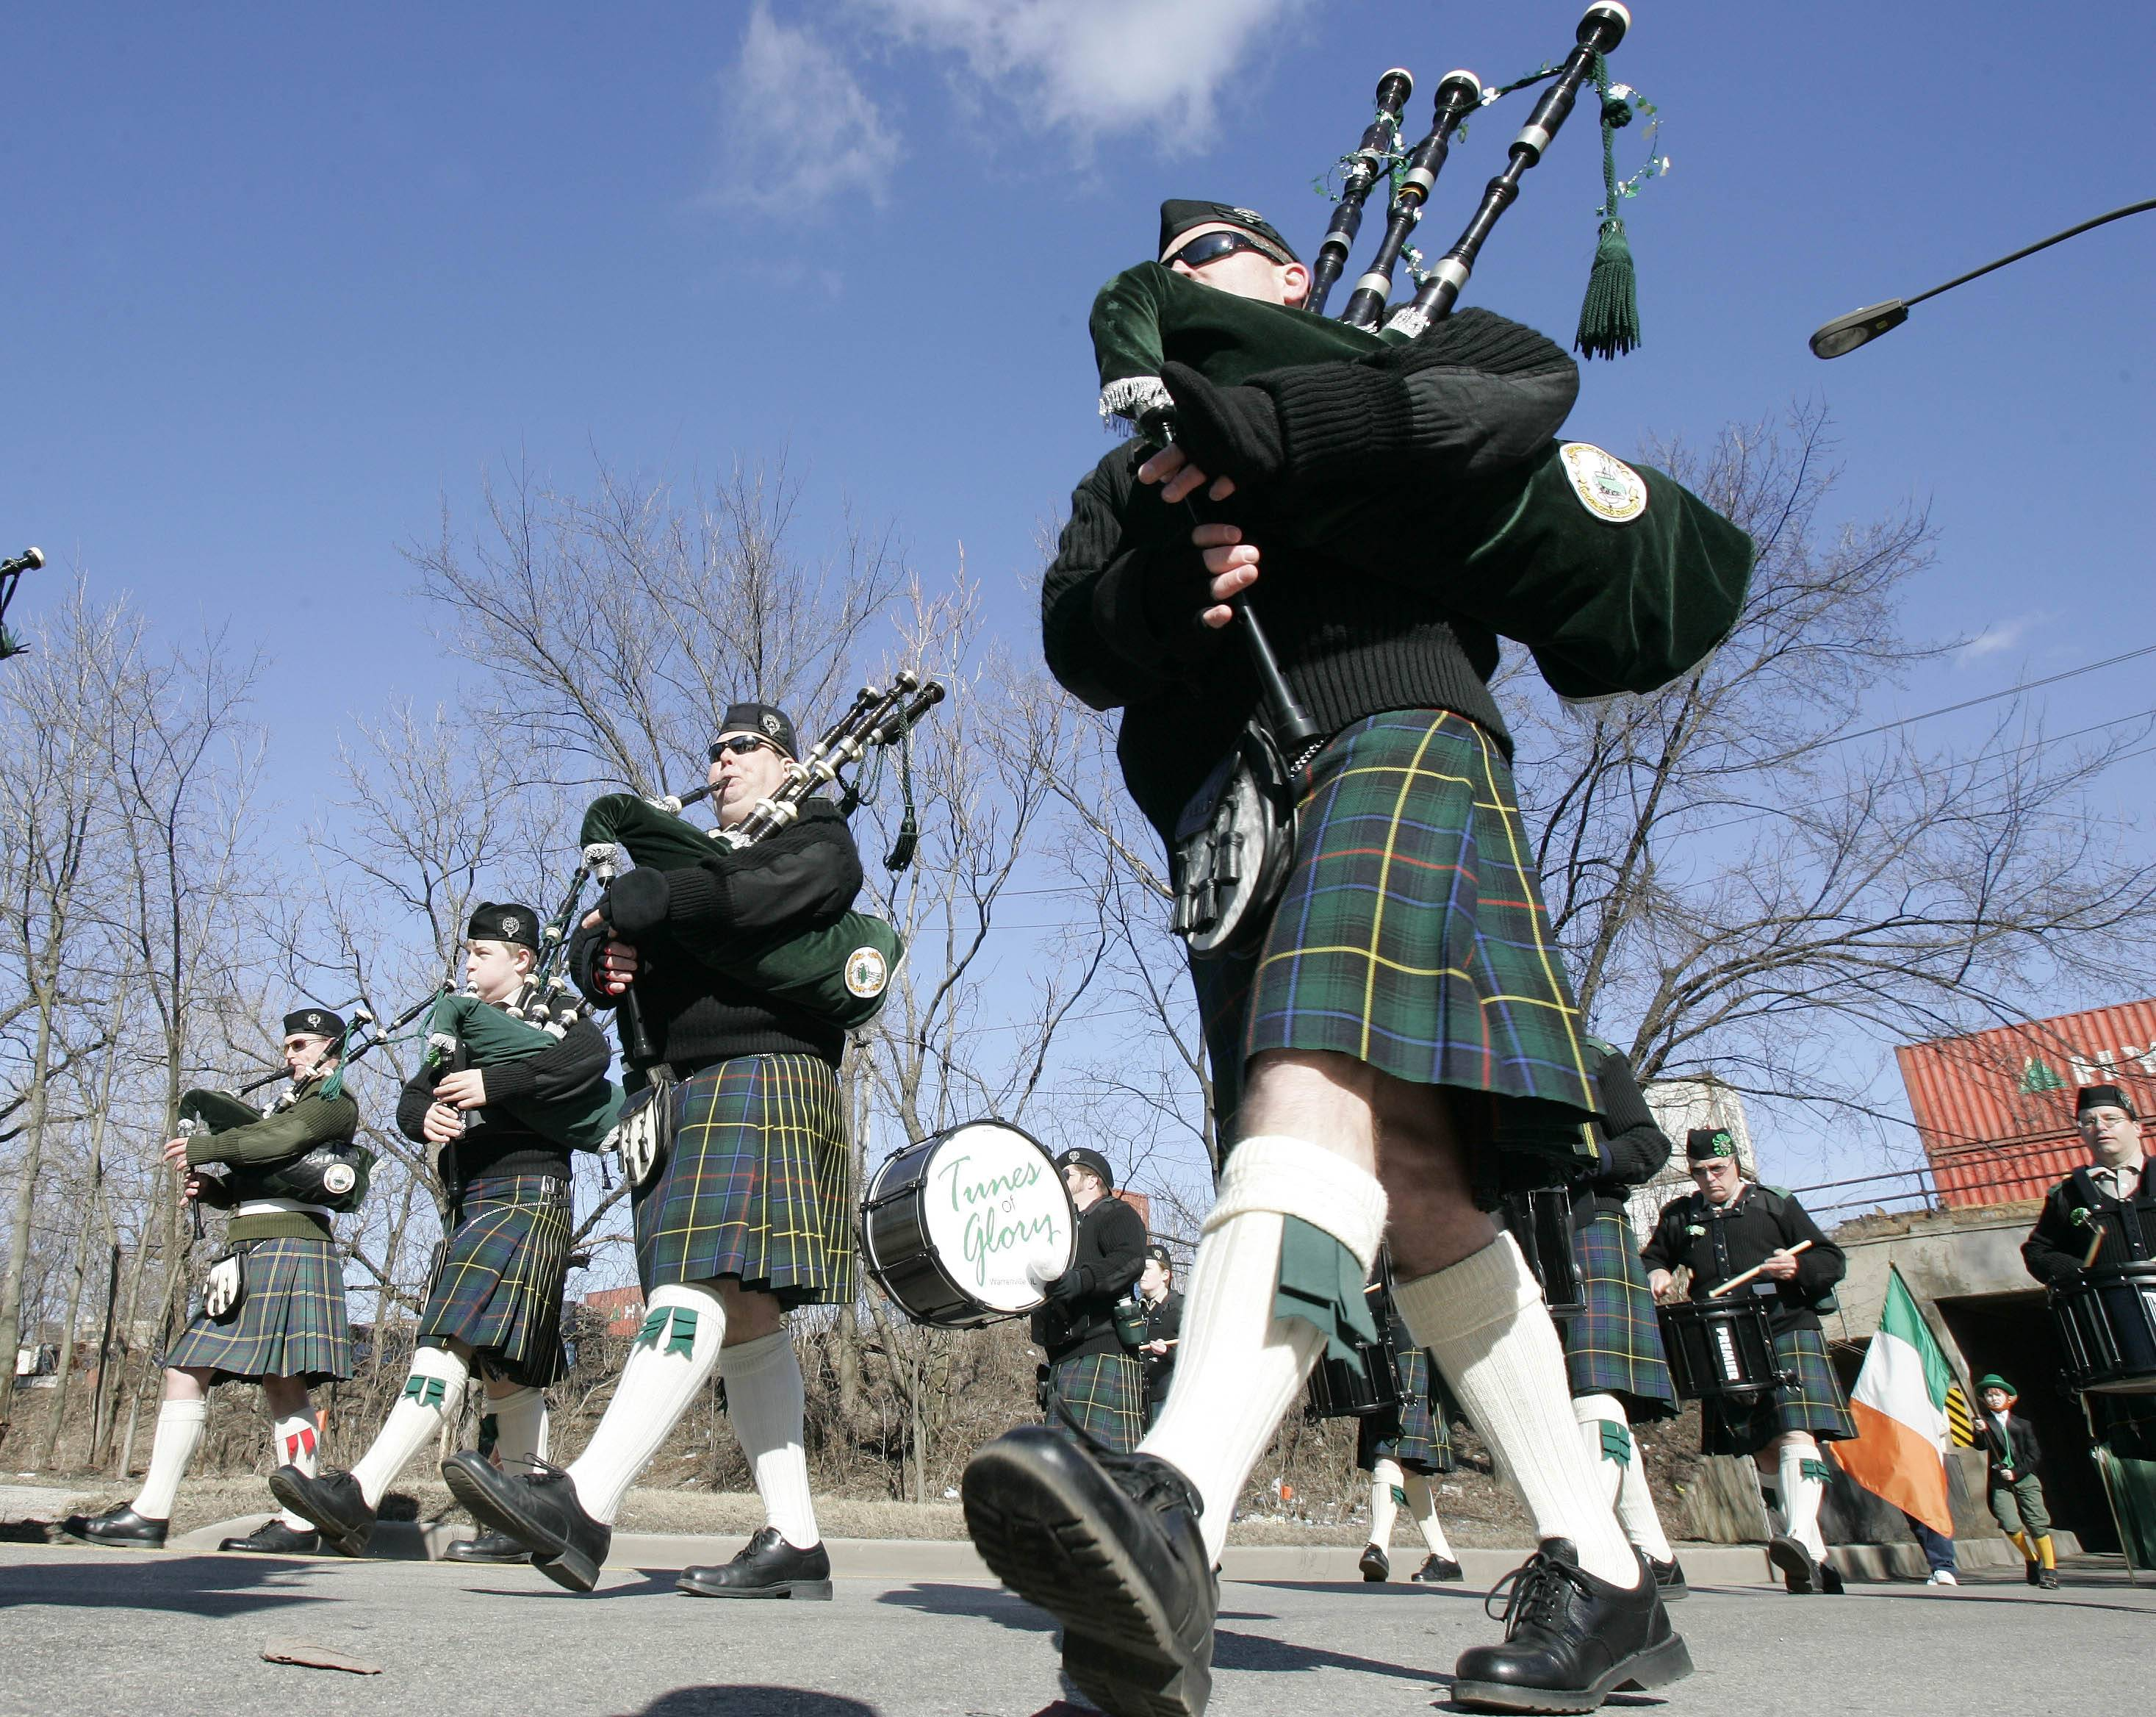 Politicians, youth groups, volunteer organizations, bands, bagpipers and local businesses all are participating in this year's St. Patrick's Day Parade in Naperville sponsored by West Suburban Irish. The parade steps off at 10 a.m. Saturday, March 15, at Naperville North High School, 899 N. Mill St.